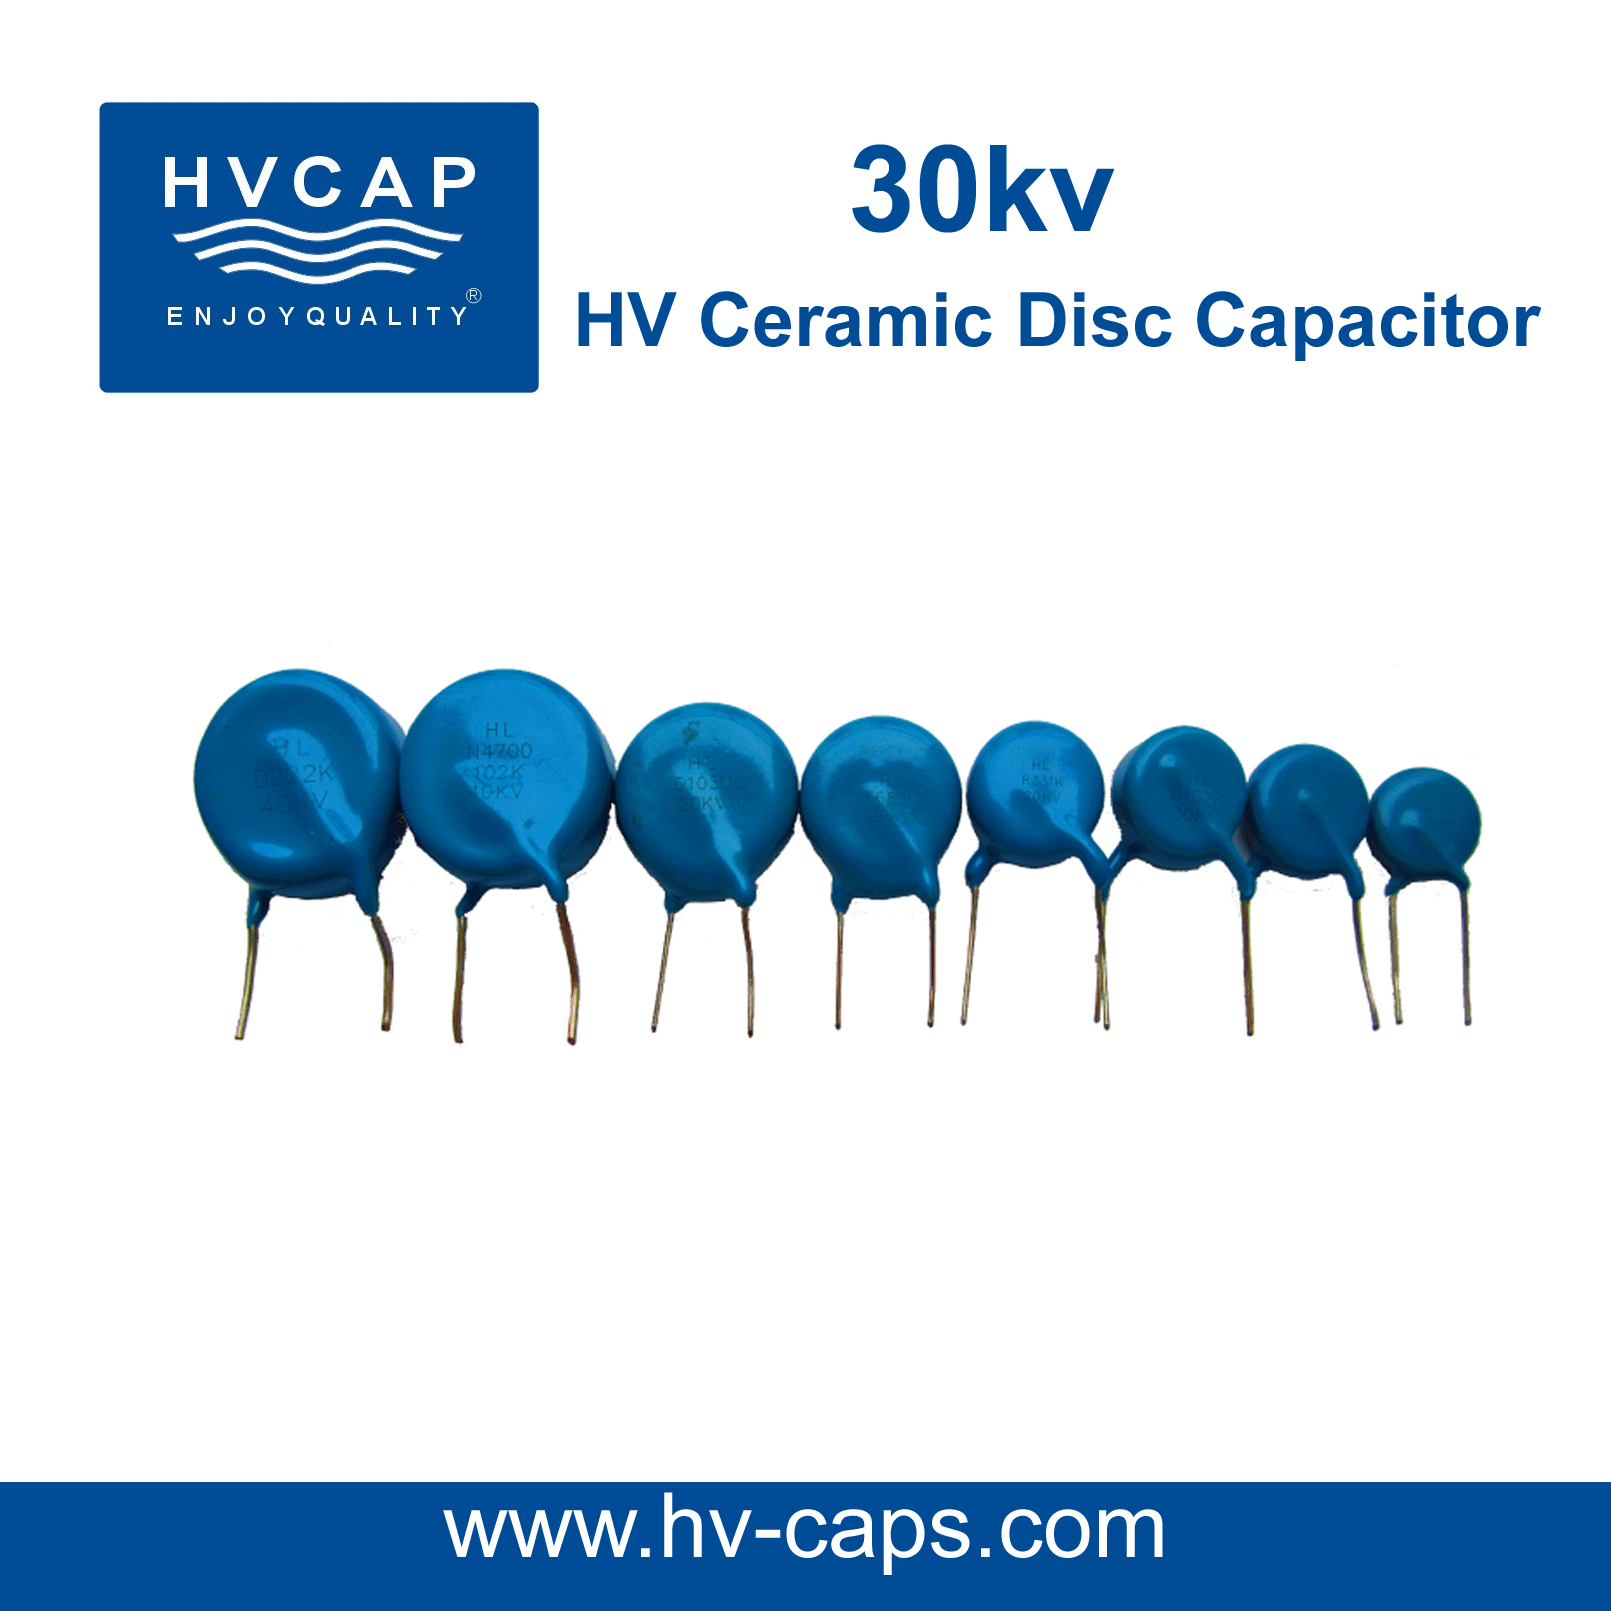 High Voltage Ceramic Capacitor 30kv detail specification.